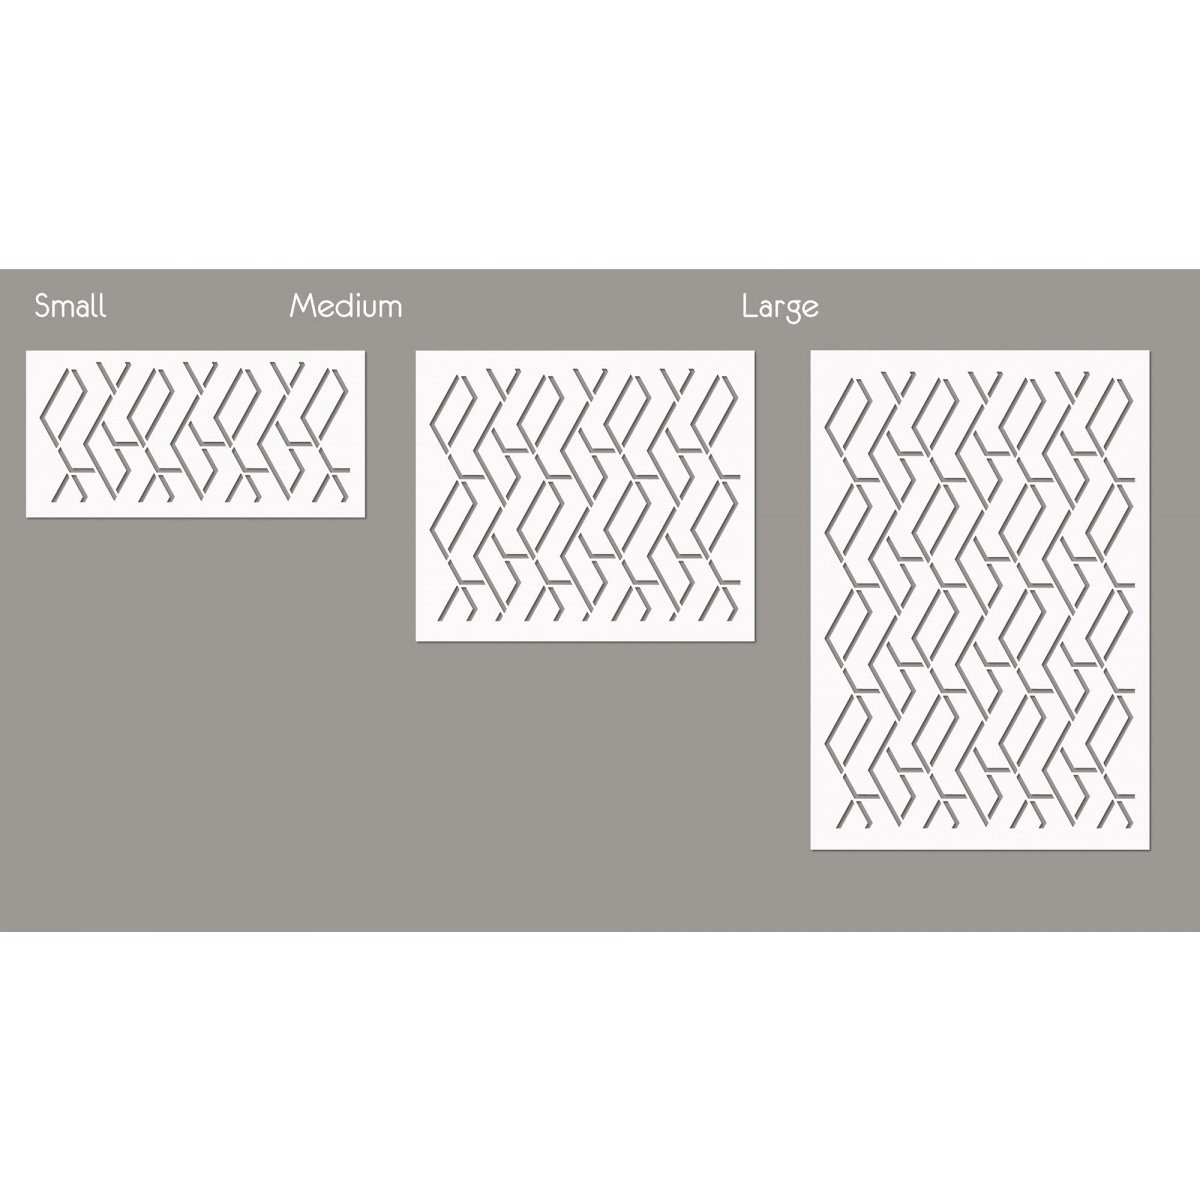 TRAPEZOID / Reusable Allover Large Wall Stencils for Painting